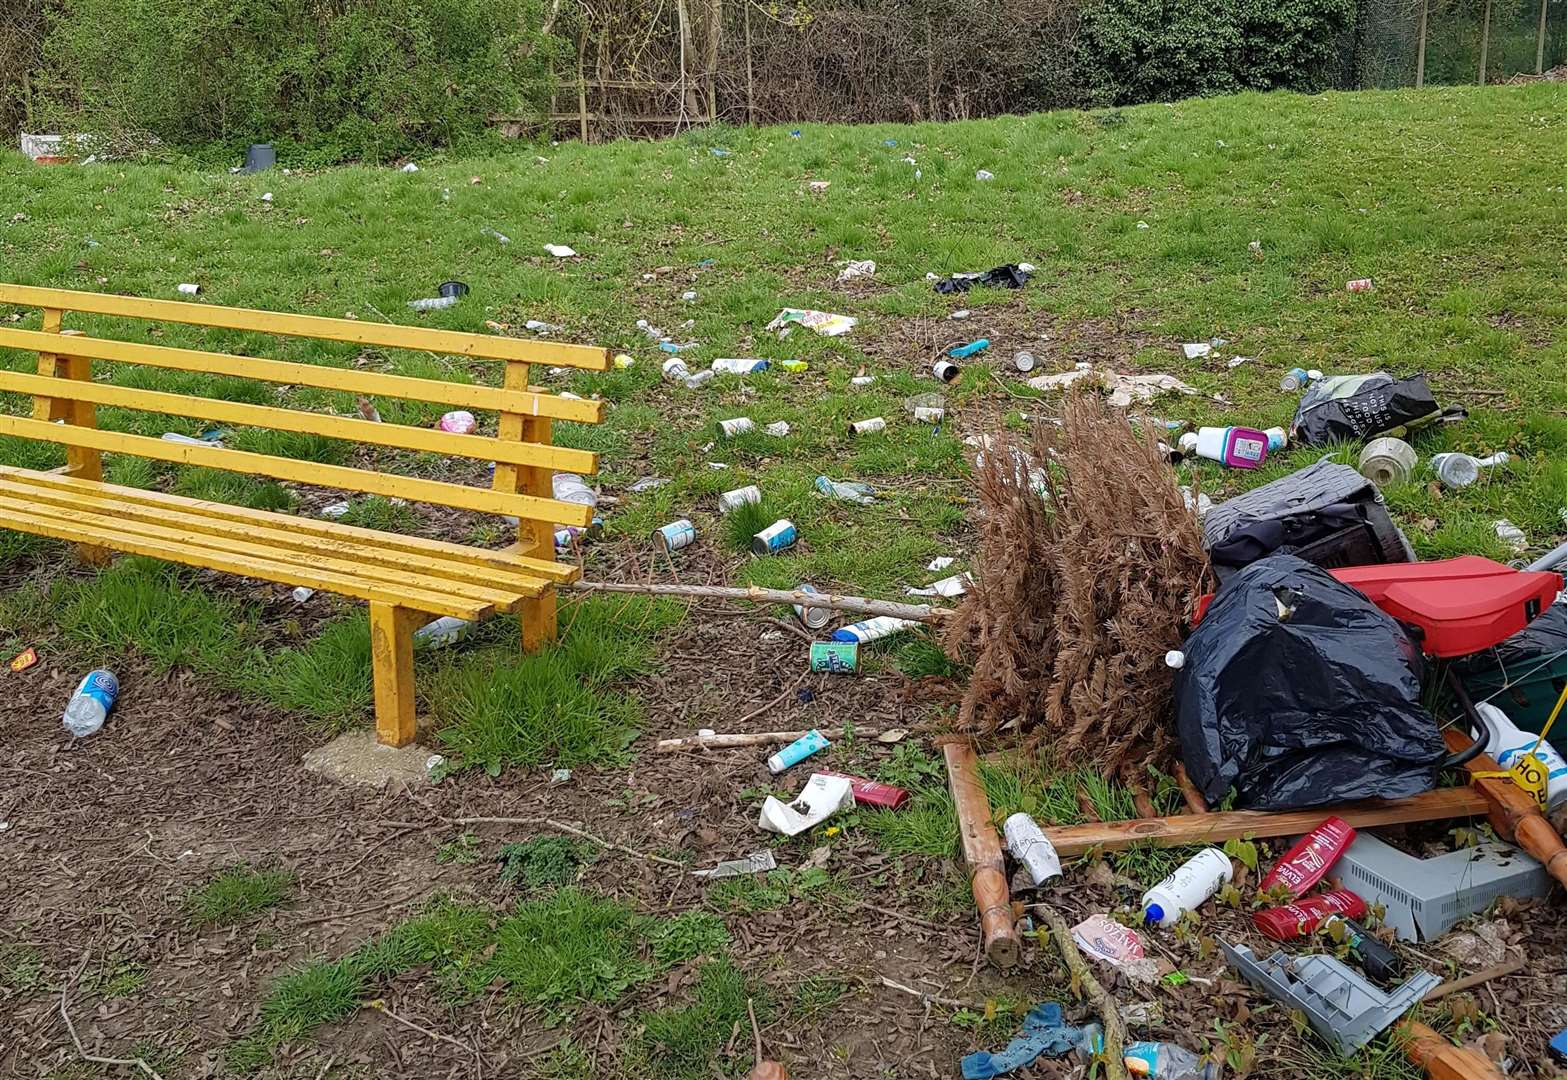 Beauty spot fly-tipping 'a disgrace'